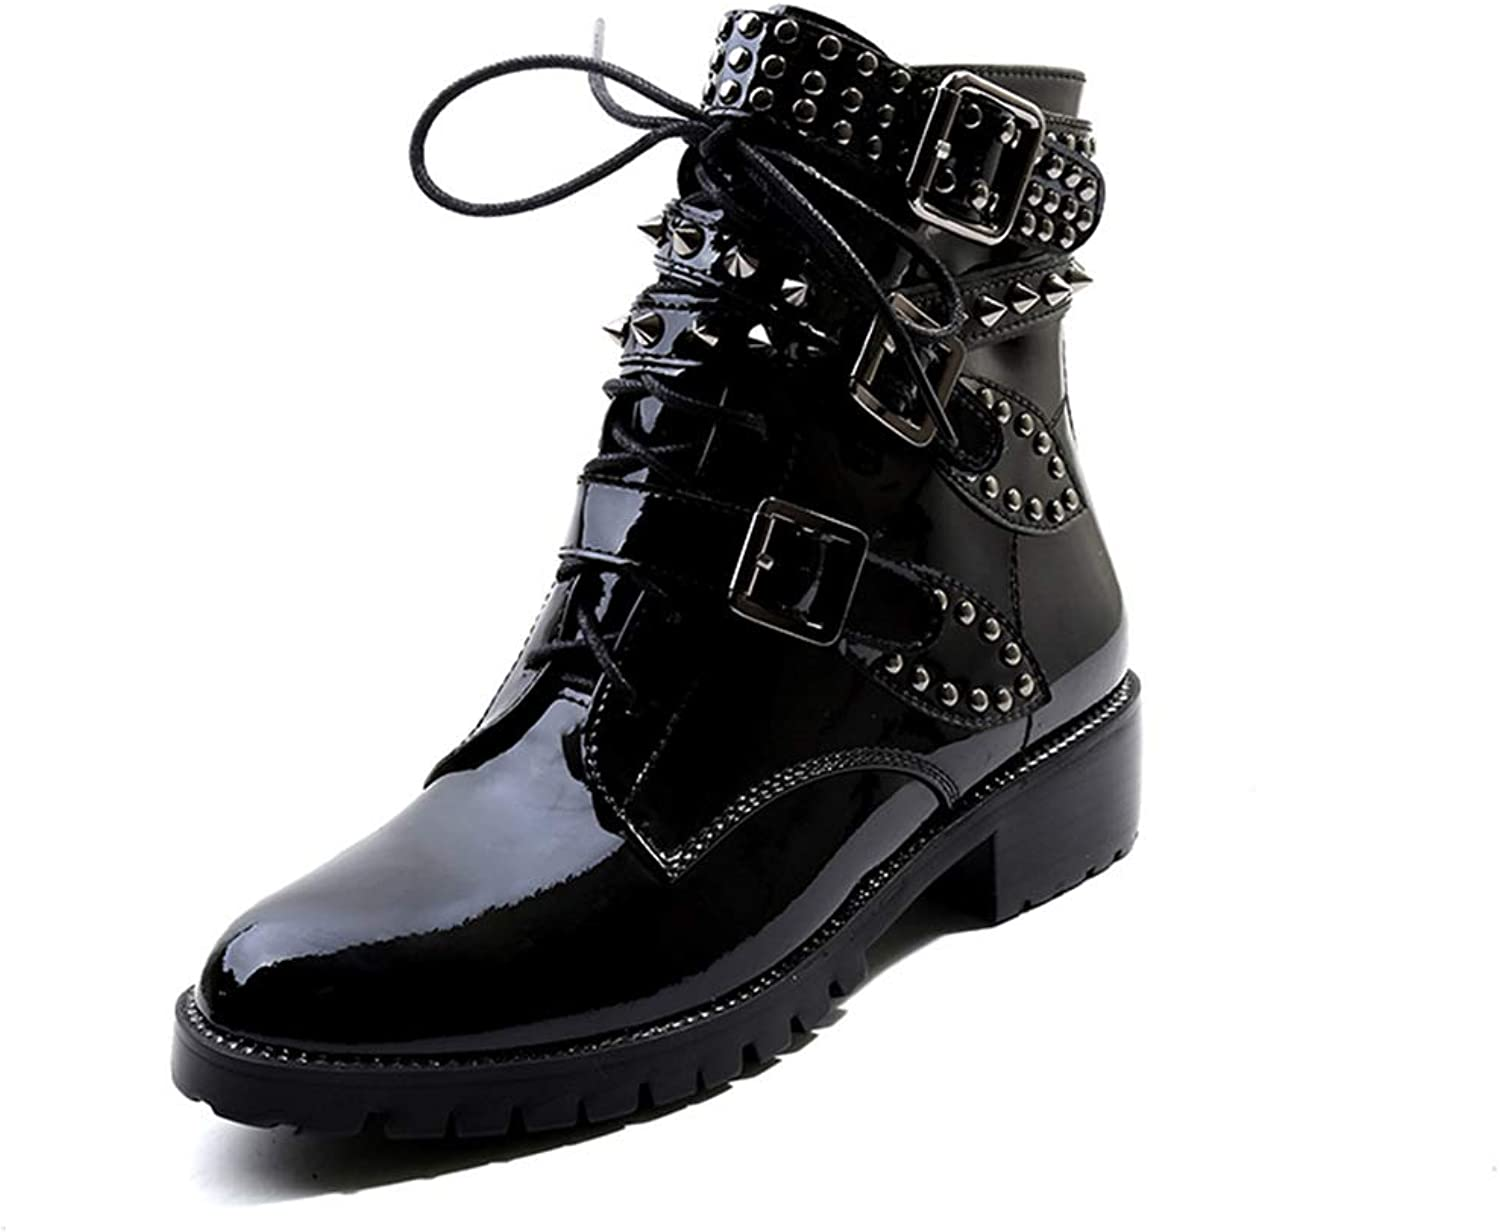 Wetkiss 2018 Latest Patent Leather Motorcycle Boots Women Cool Ankle Bootie Buckle Rivets Boot shoes Woman